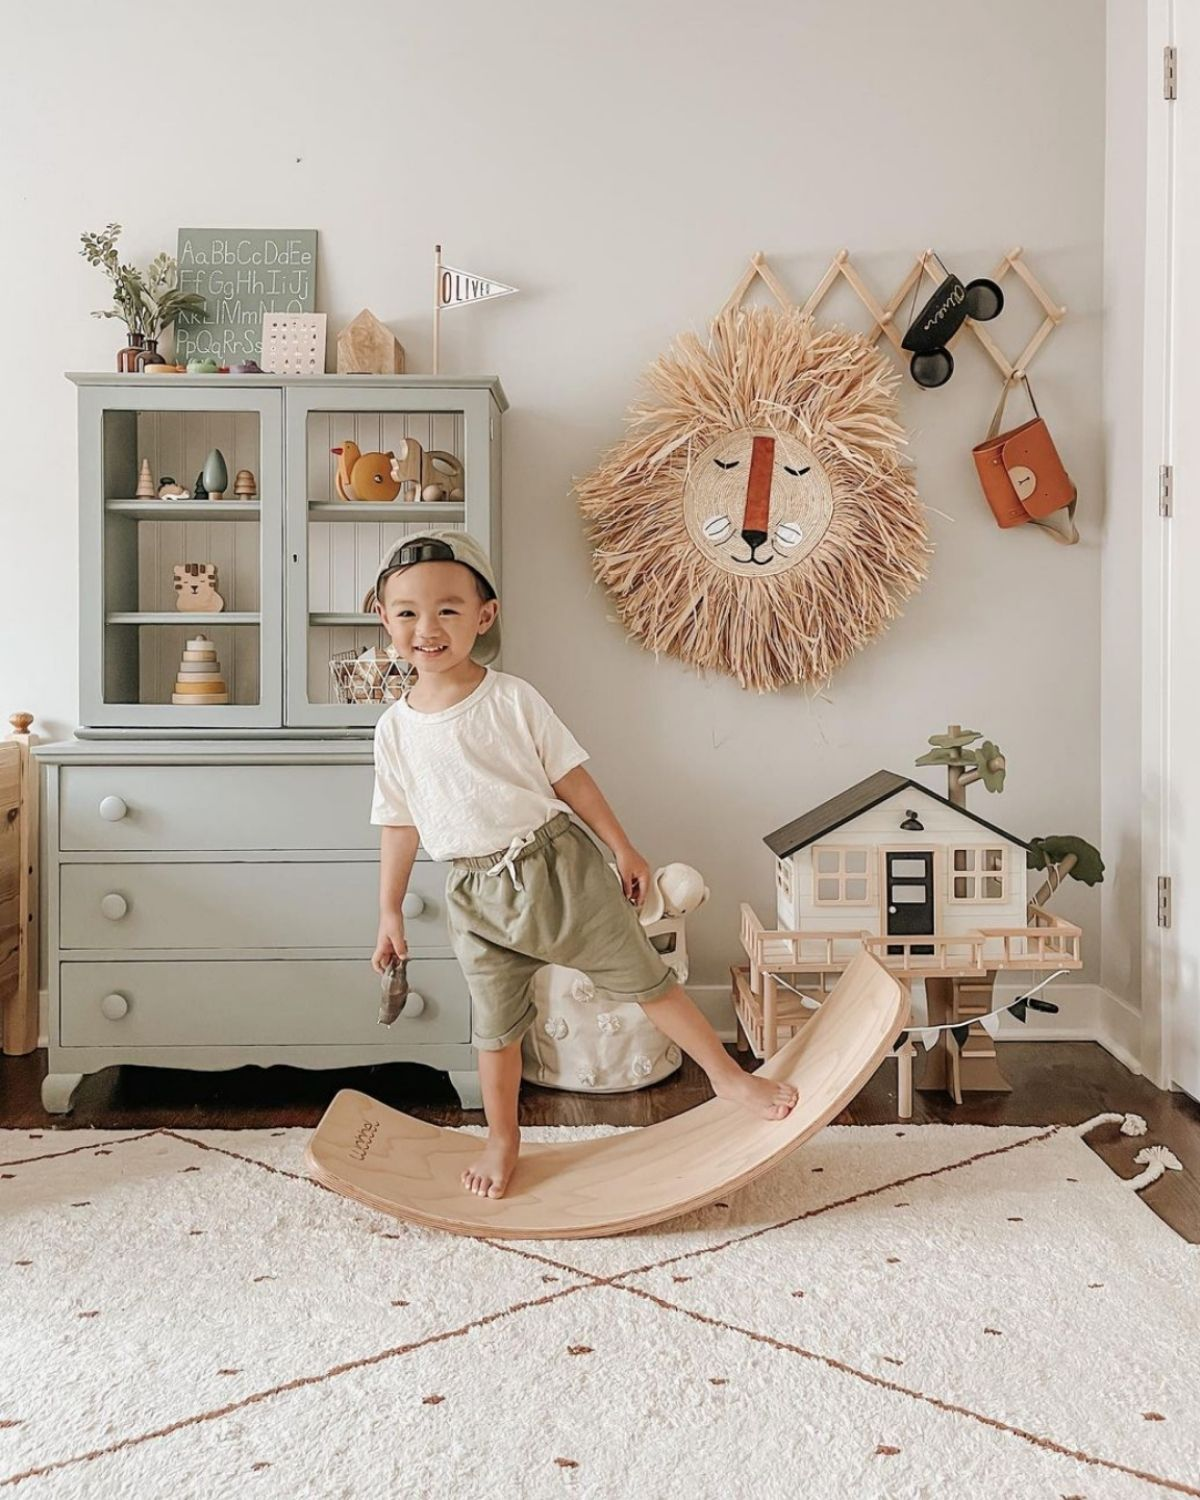 OLIVER'S ROOM by Nancy @__thenguyens - 2